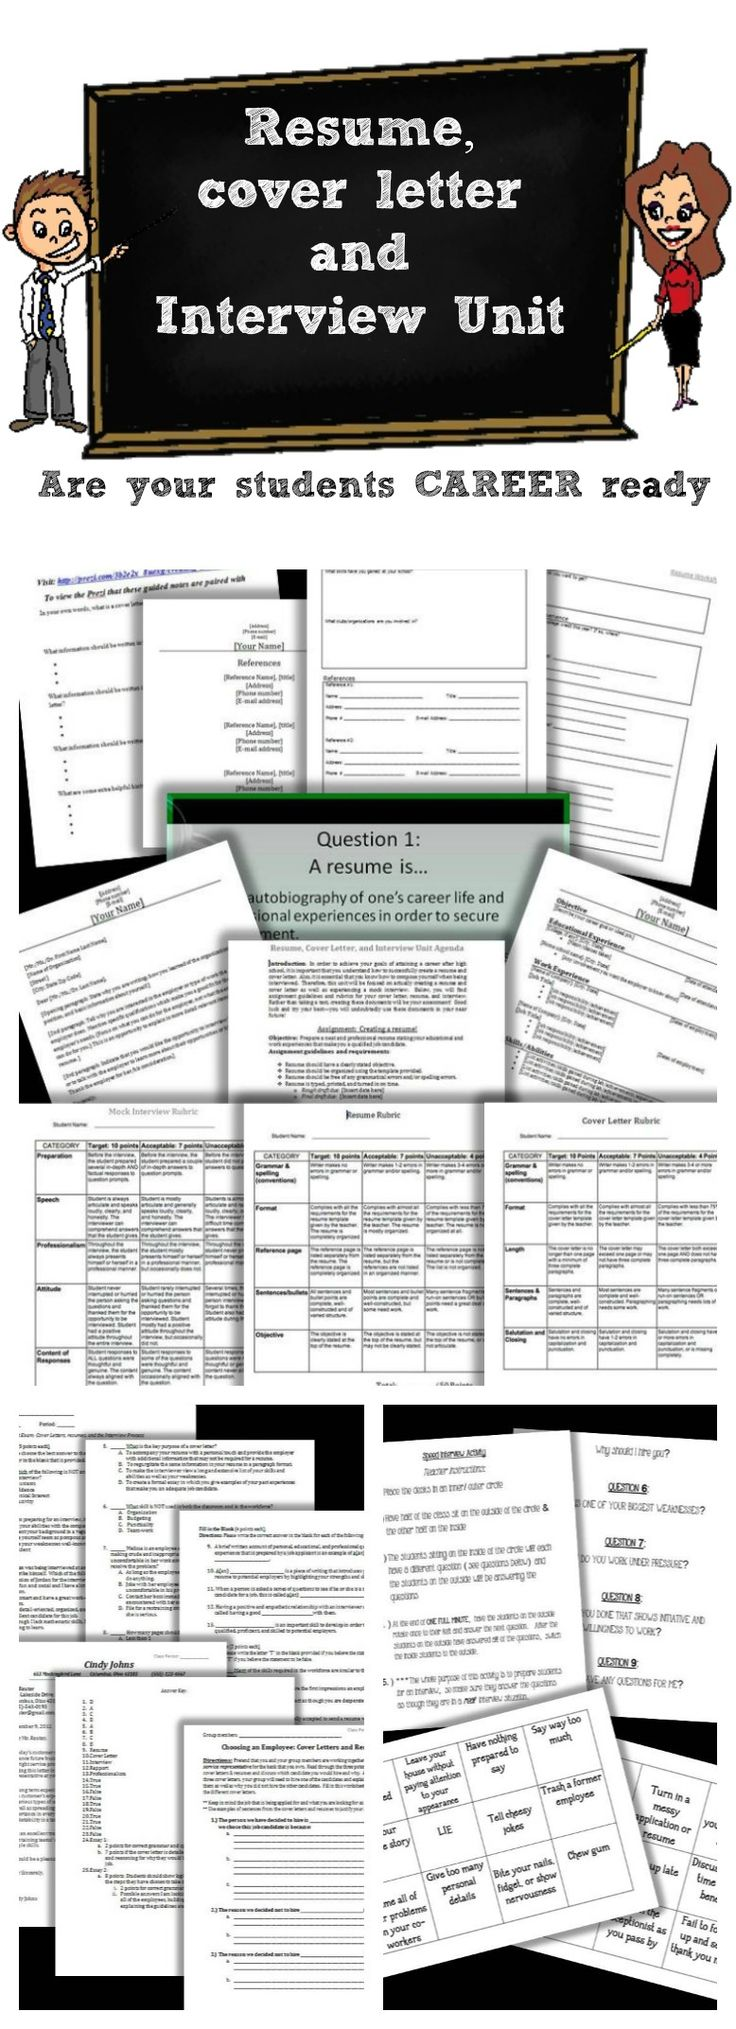 Leading Construction Cover Letter Examples Resources MyPerfectCoverLetter